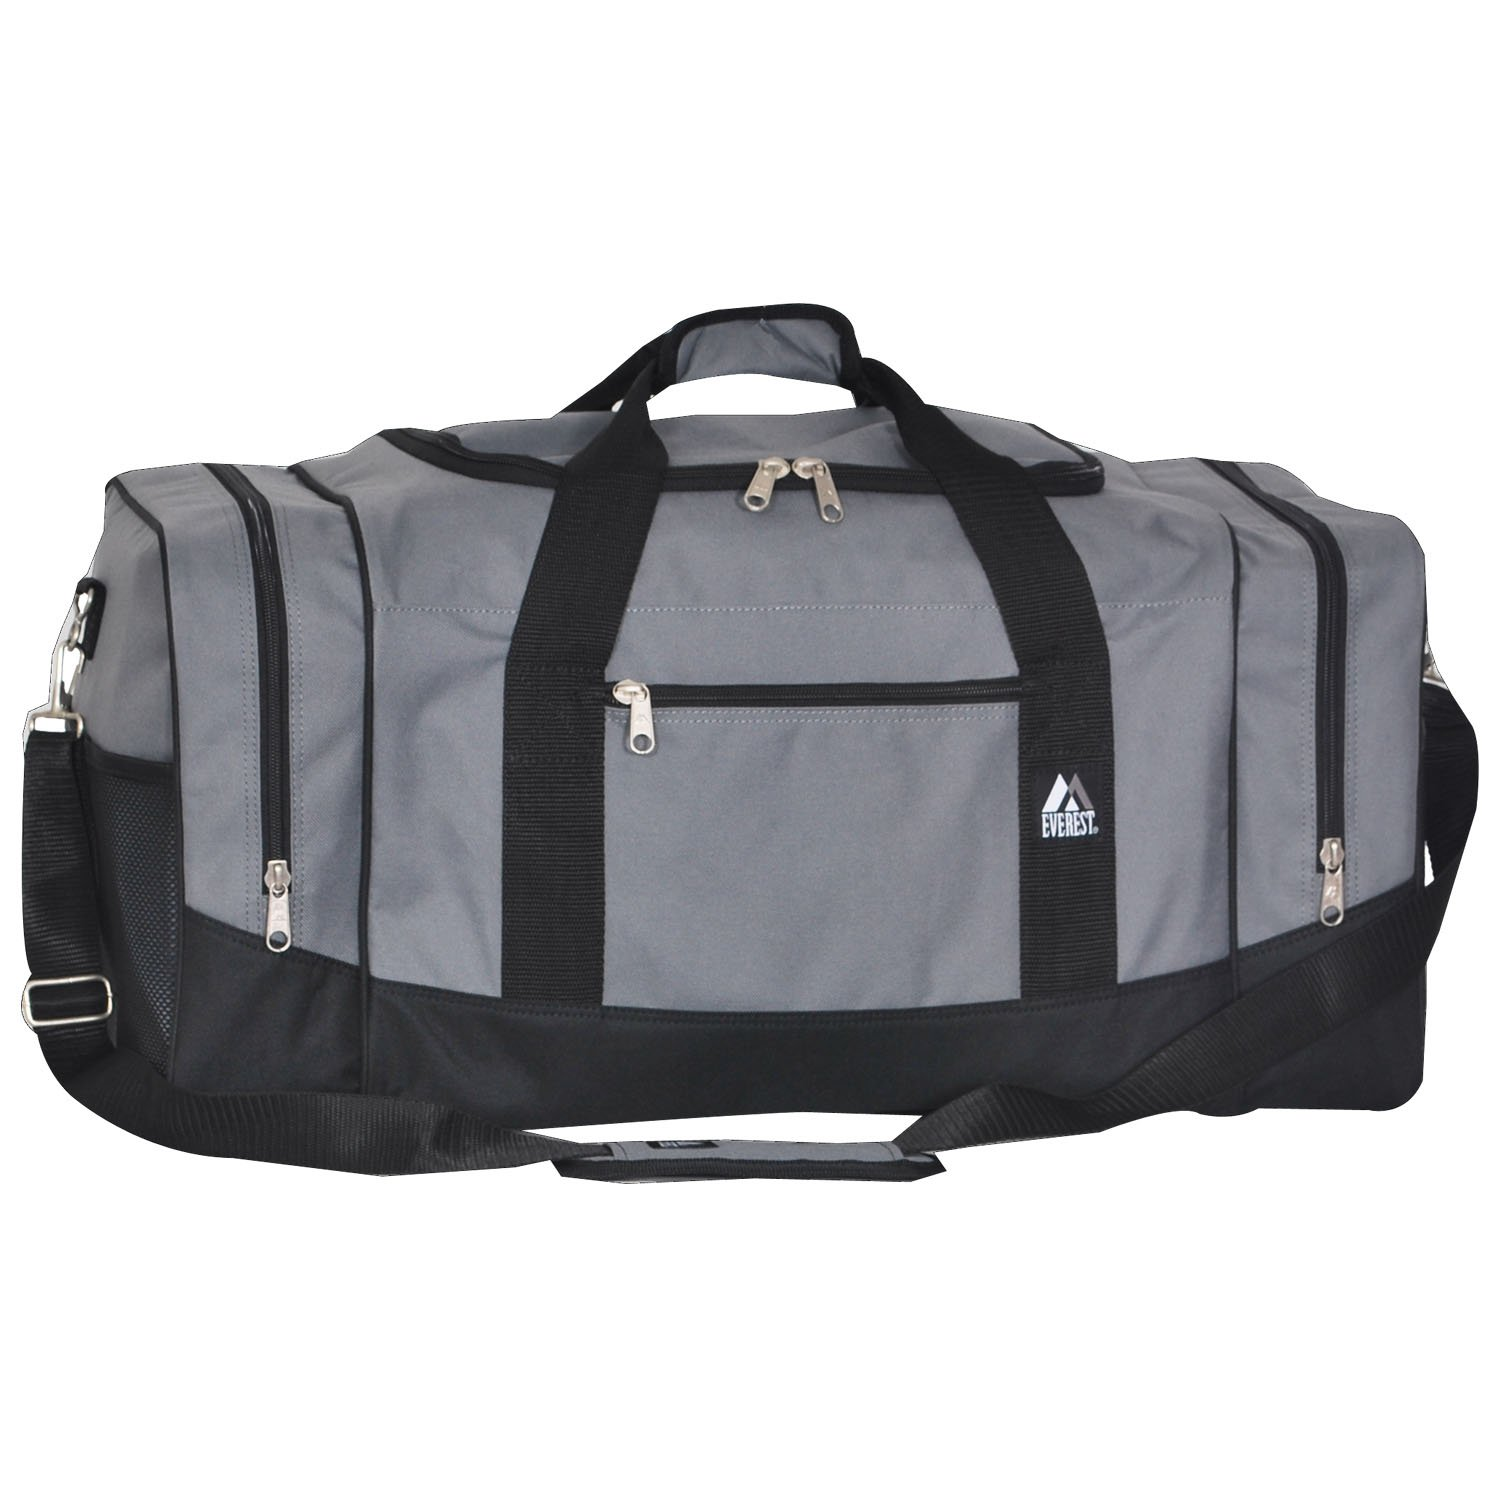 Everest Luggage Sport Gear Bag 25 Inches Long By 12 Inches Tall By 12 Inches Wide. Black Bags Set of 2 Large